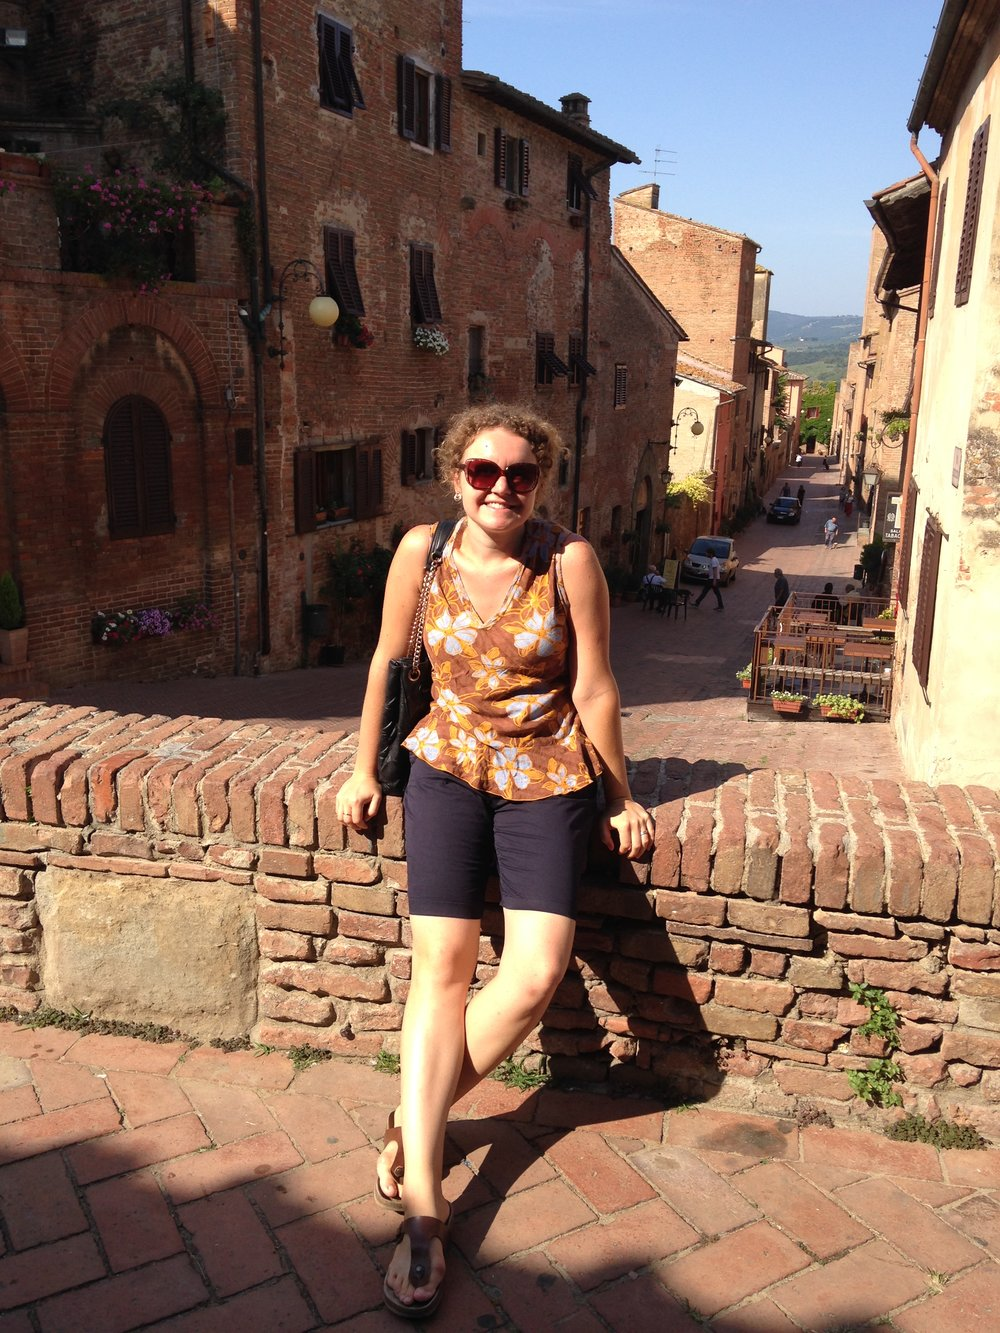 August 10, 2014: My first visit to Boccaccio's hometown of Certaldo, a hilltop town in Tuscany.